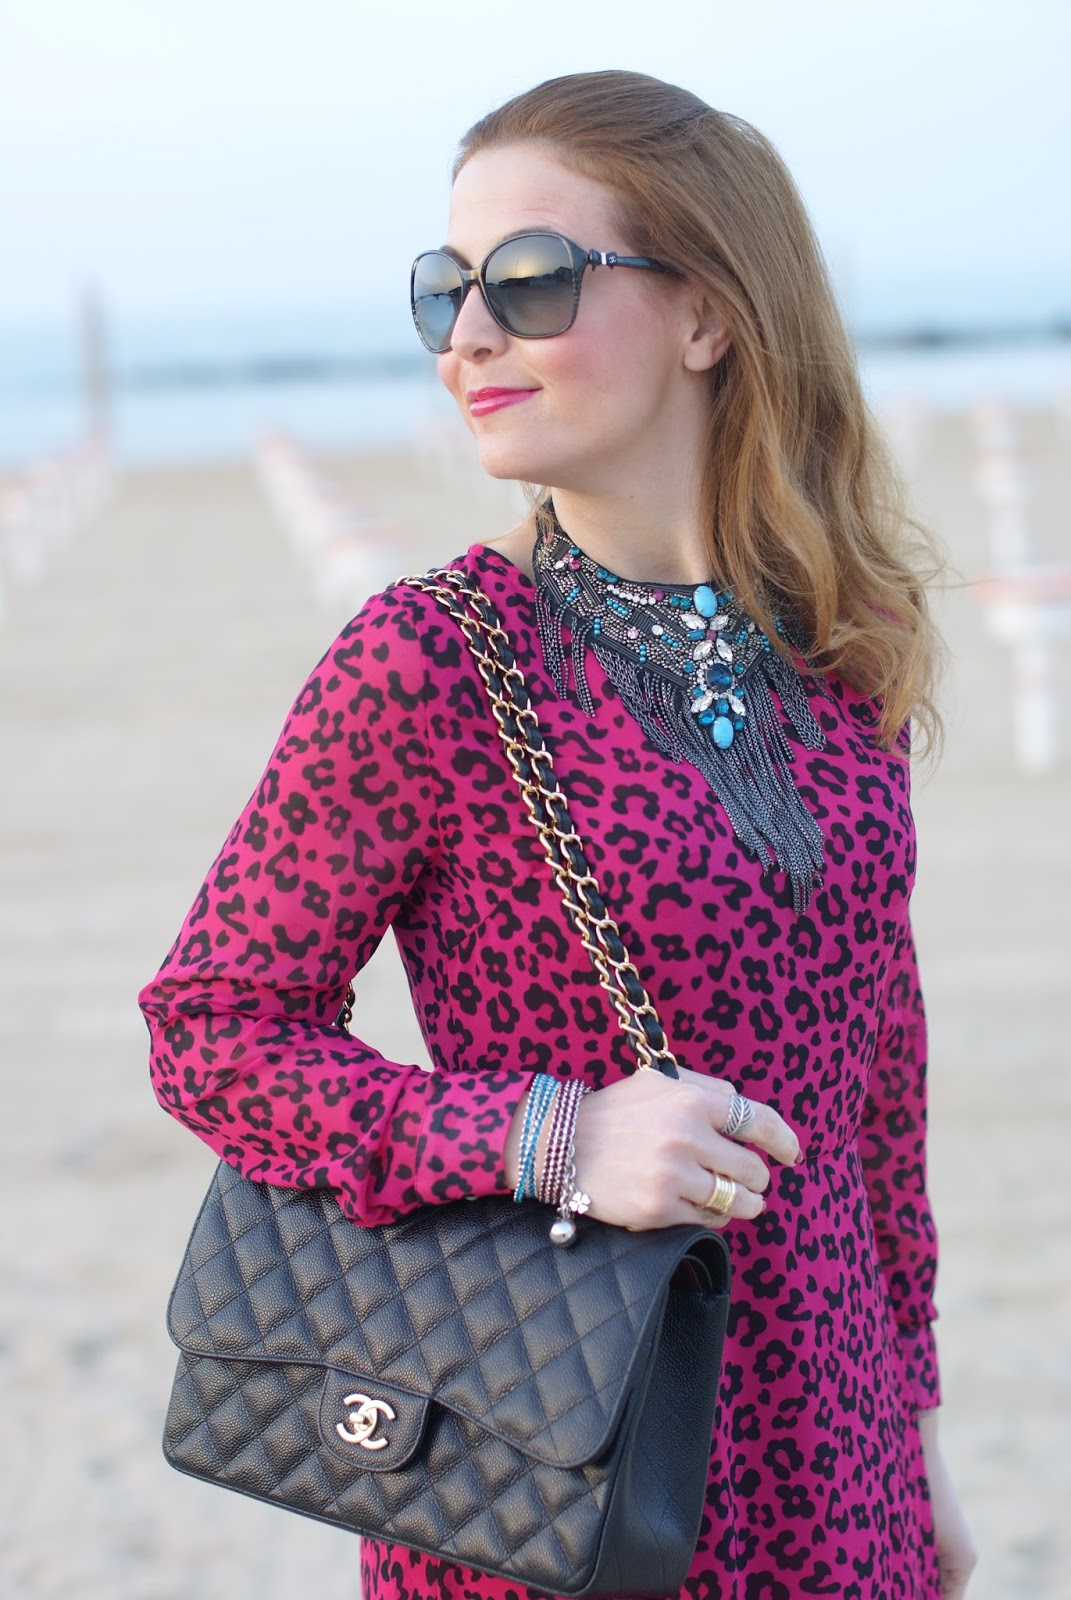 SimonaB Bijoux collana, borsa Chanel 2.55 caviar, Romwe pink leopard dress, Fashion and Cookies fashion blog